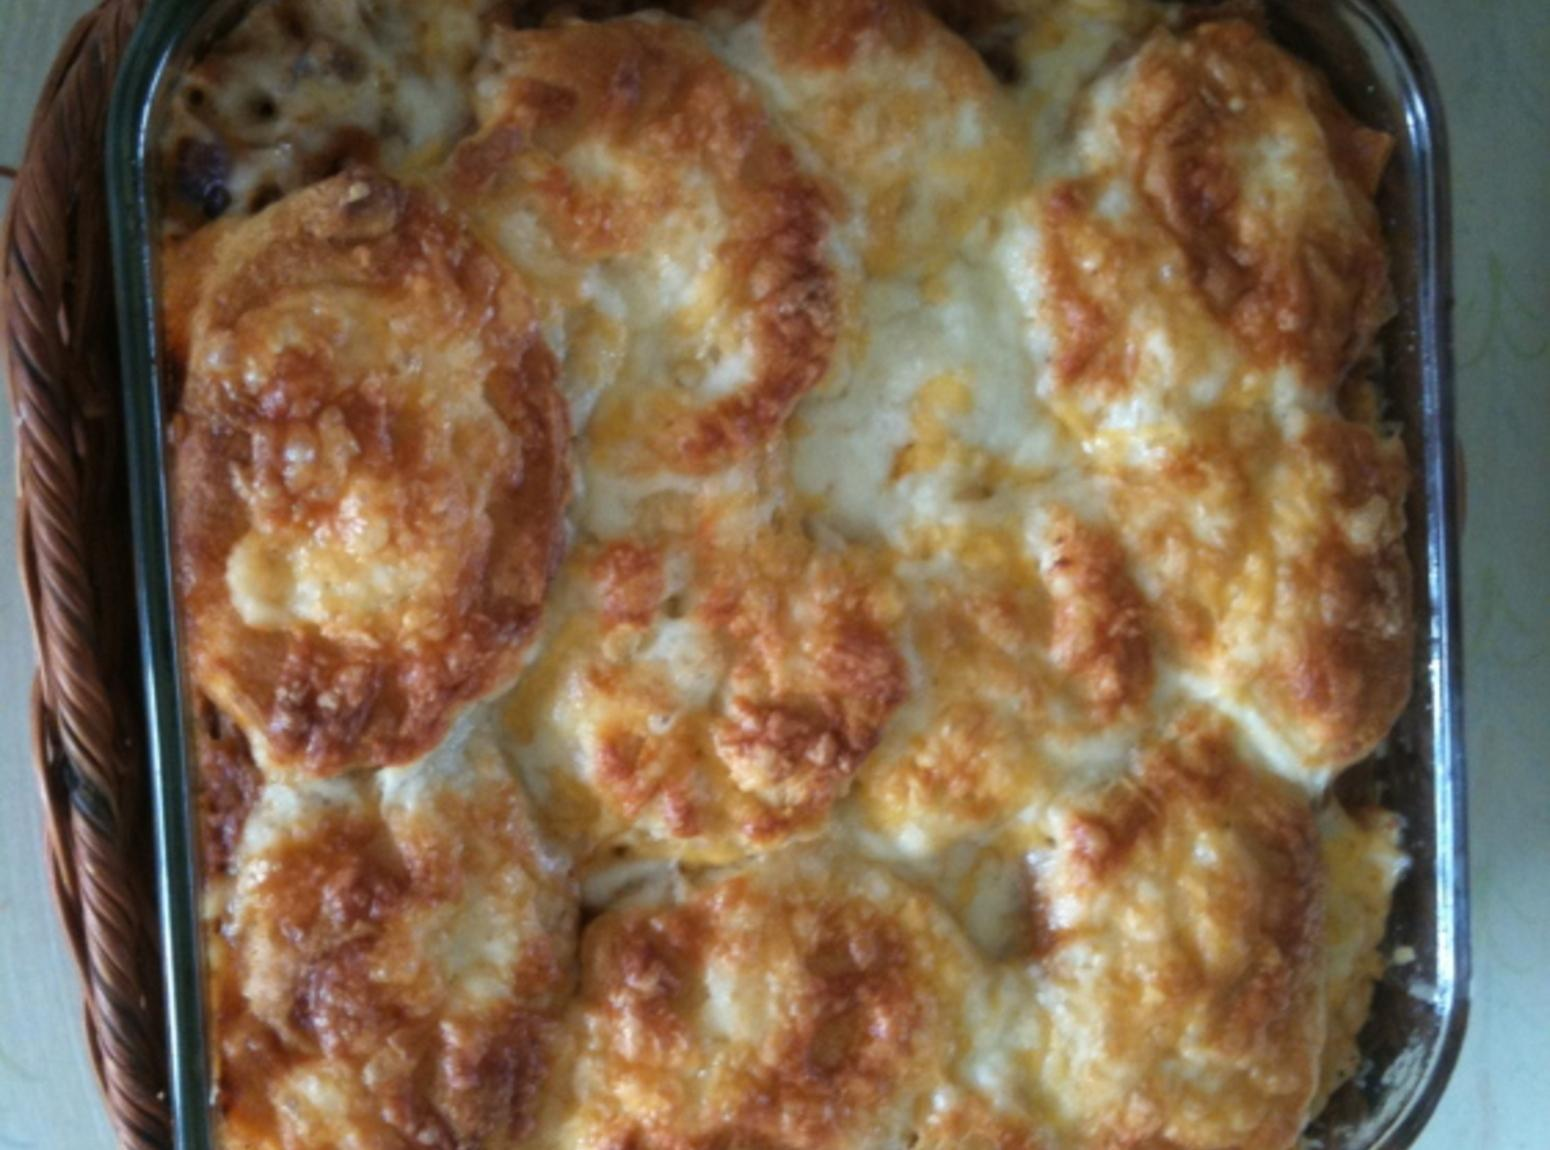 Beef and Biscuit Casserole Recipe 2 | Just A Pinch Recipes